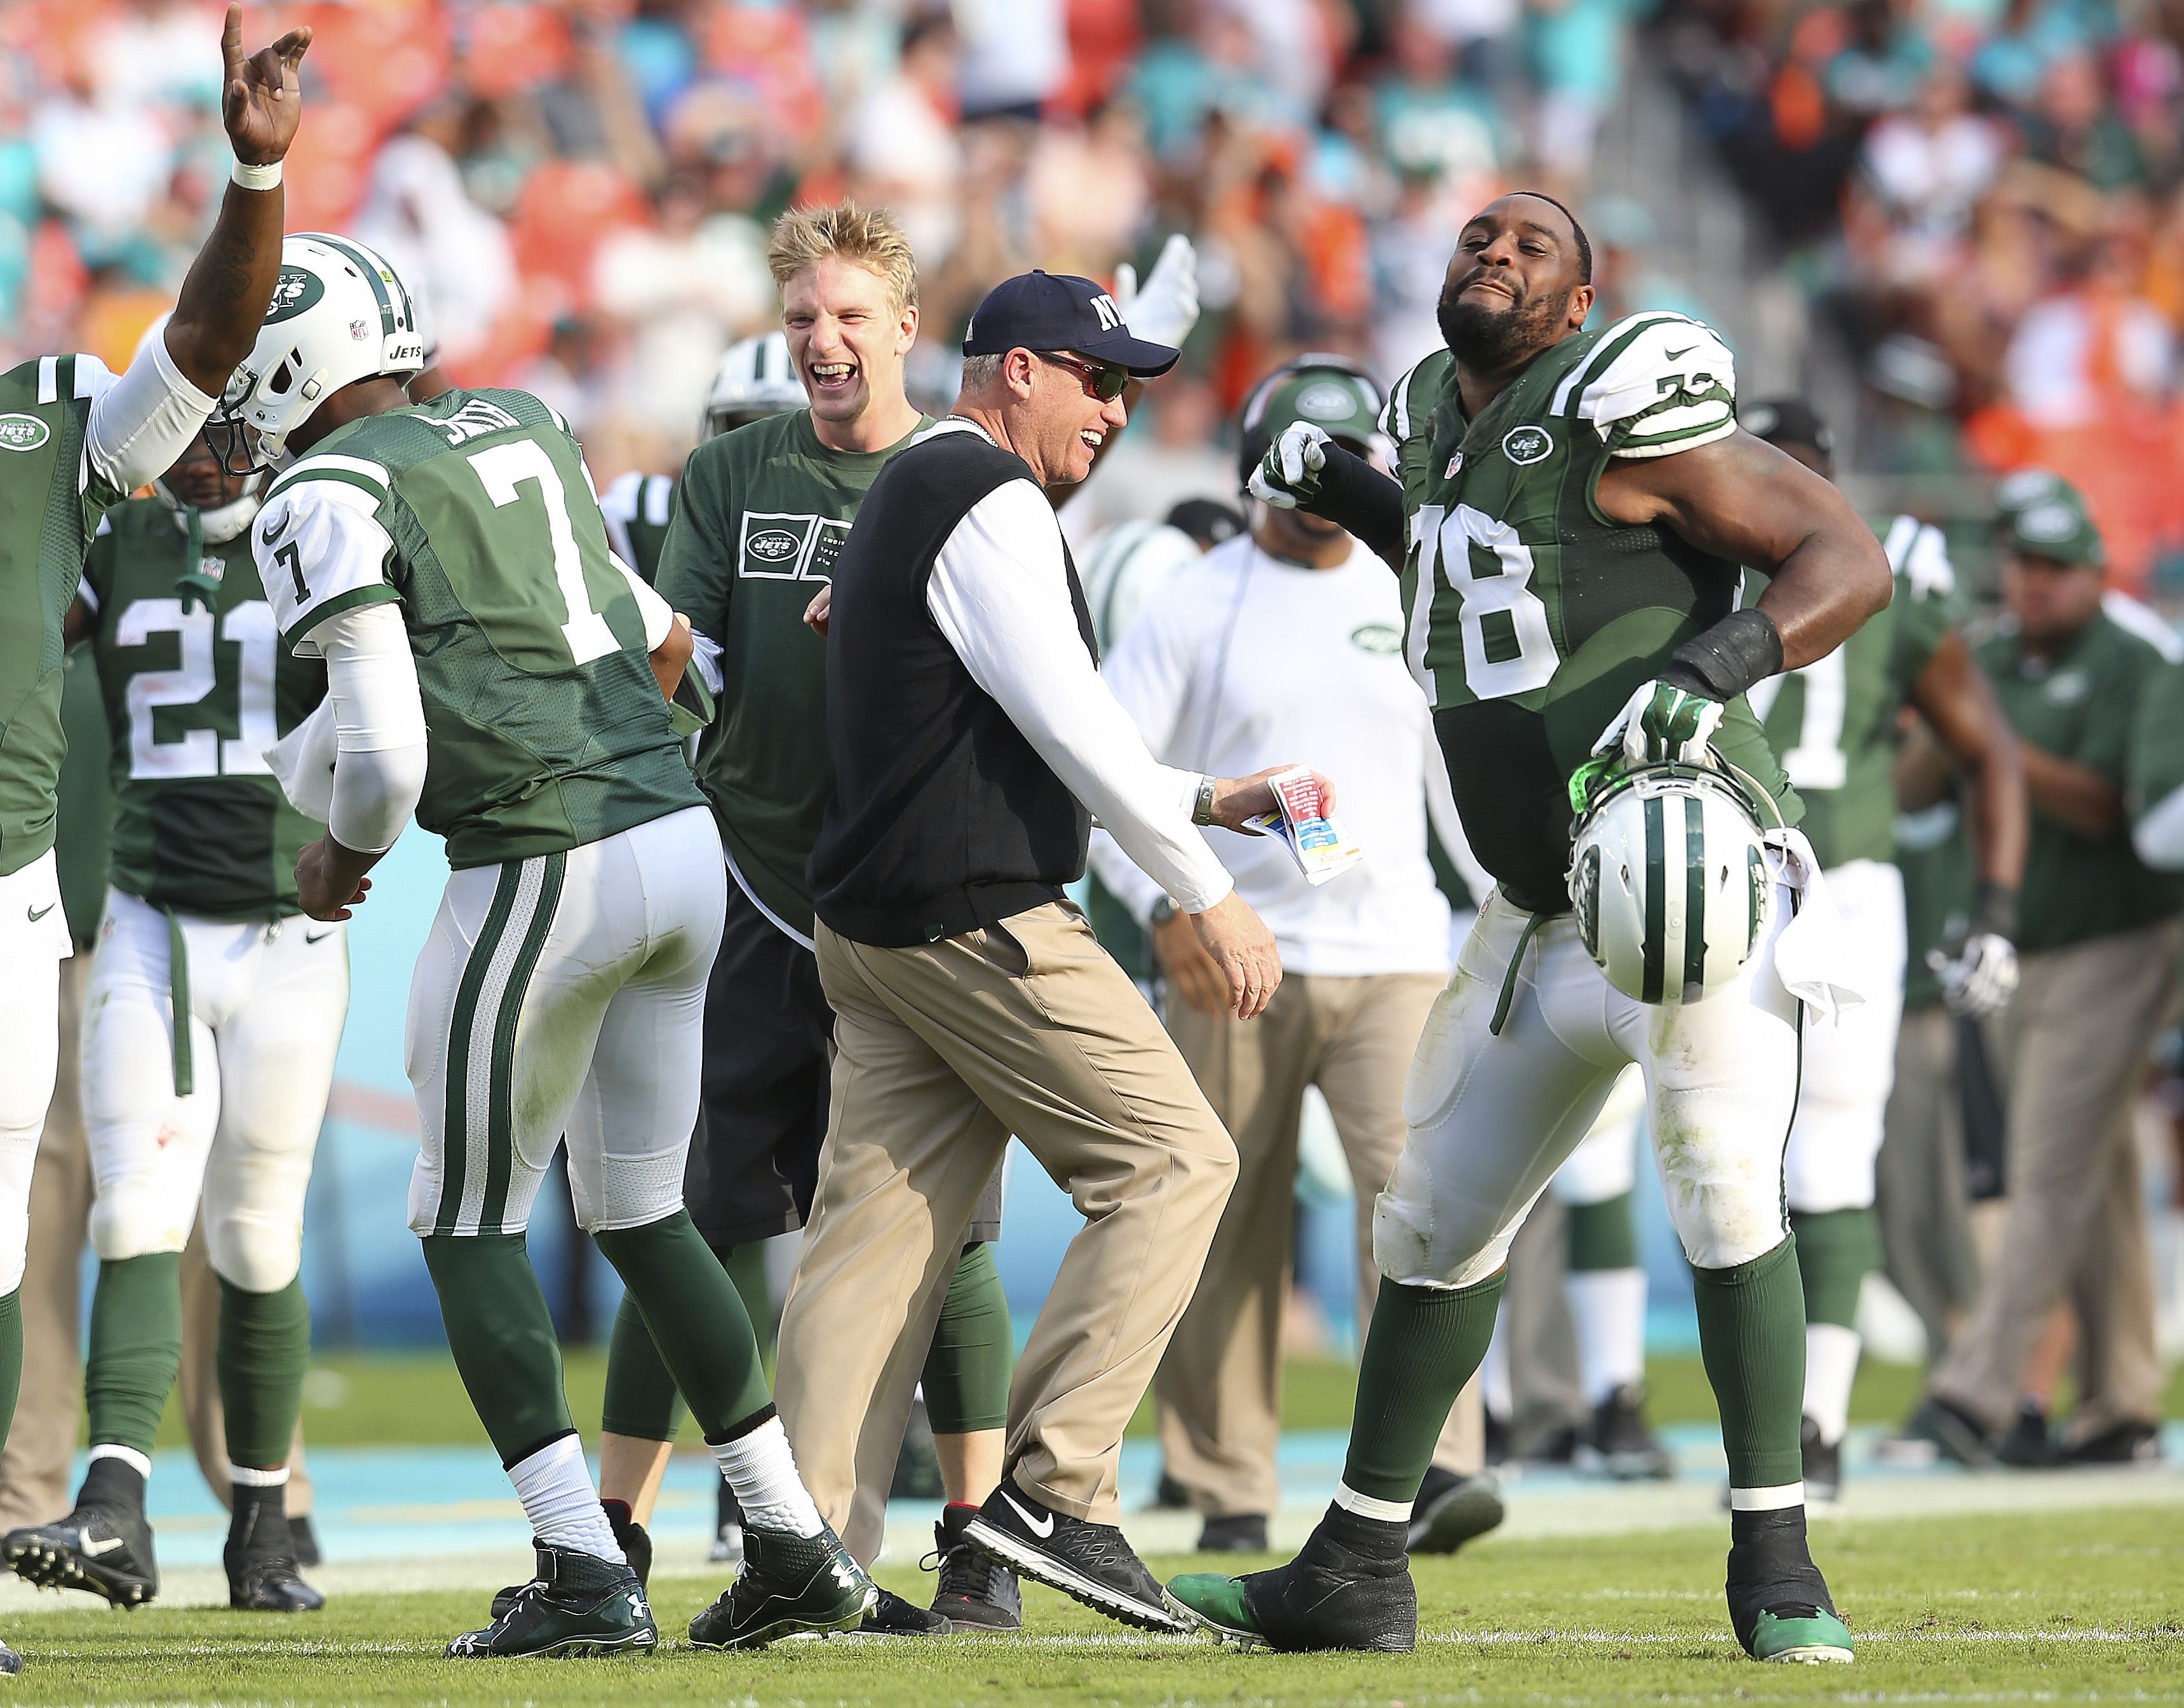 Leger Douzable (78) is happy to be reunited with coach Rex Ryan here in Buffalo after the two were together with the New York Jets. (Getty Images)